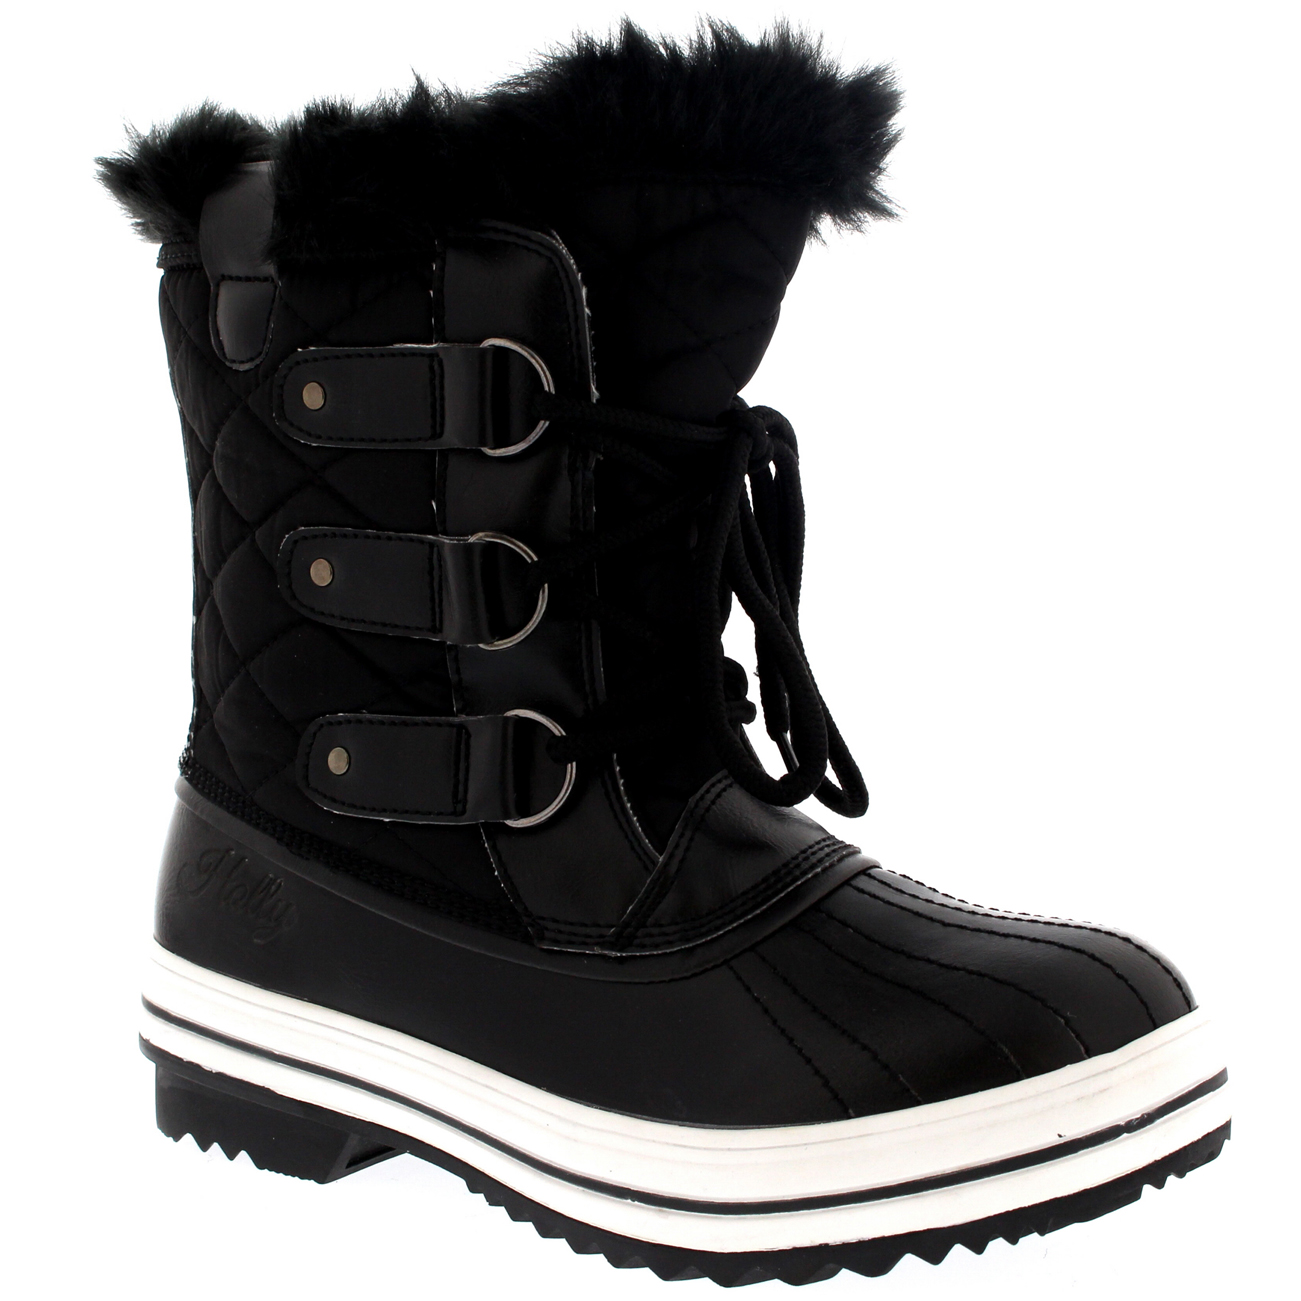 Womens Waterproof Snow Boots Sale | Homewood Mountain Ski Resort